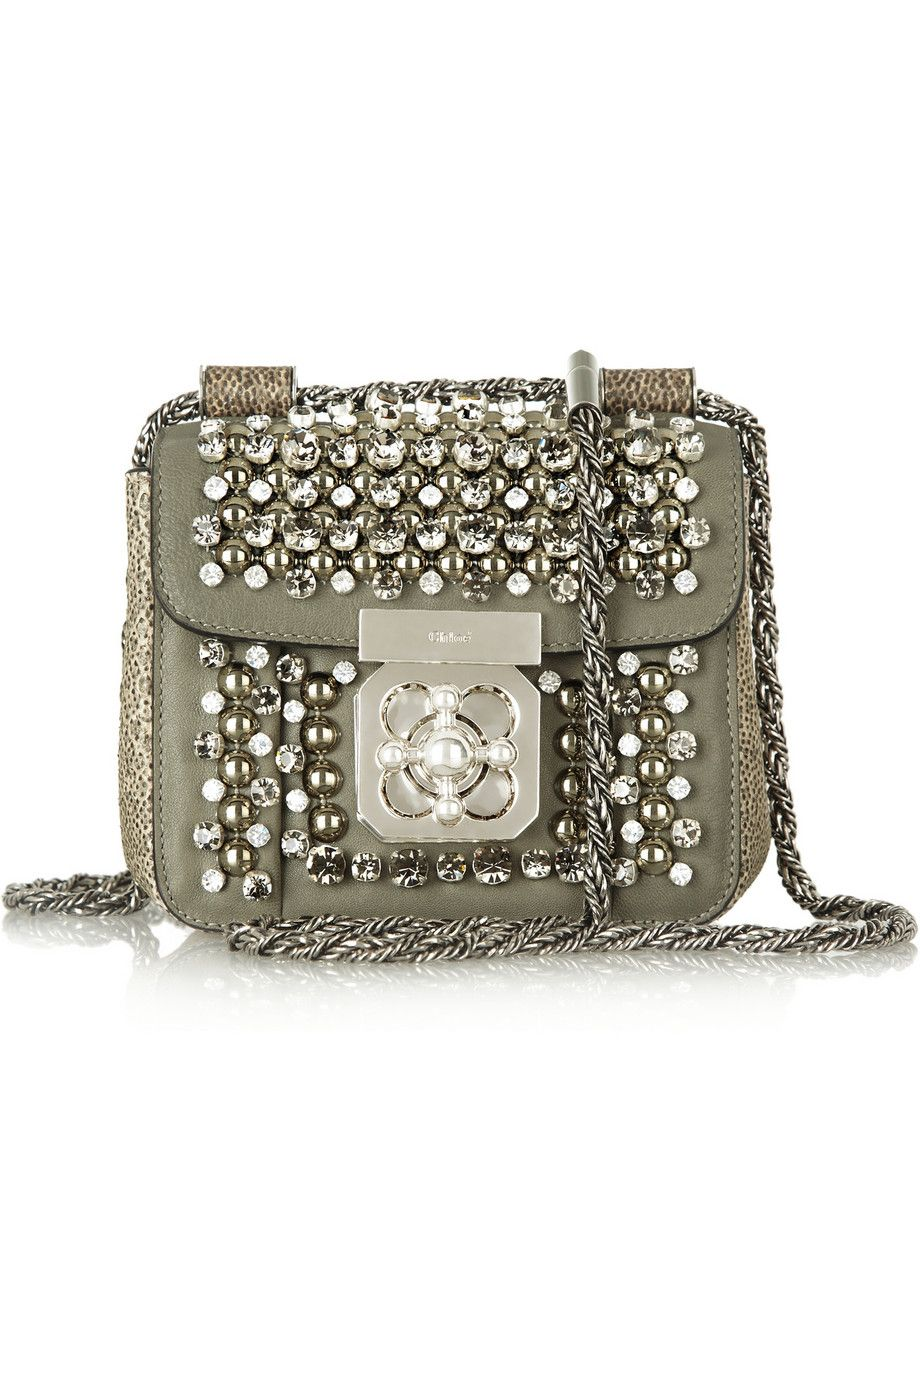 Absolutely Gorgeous Bag And Part Of The